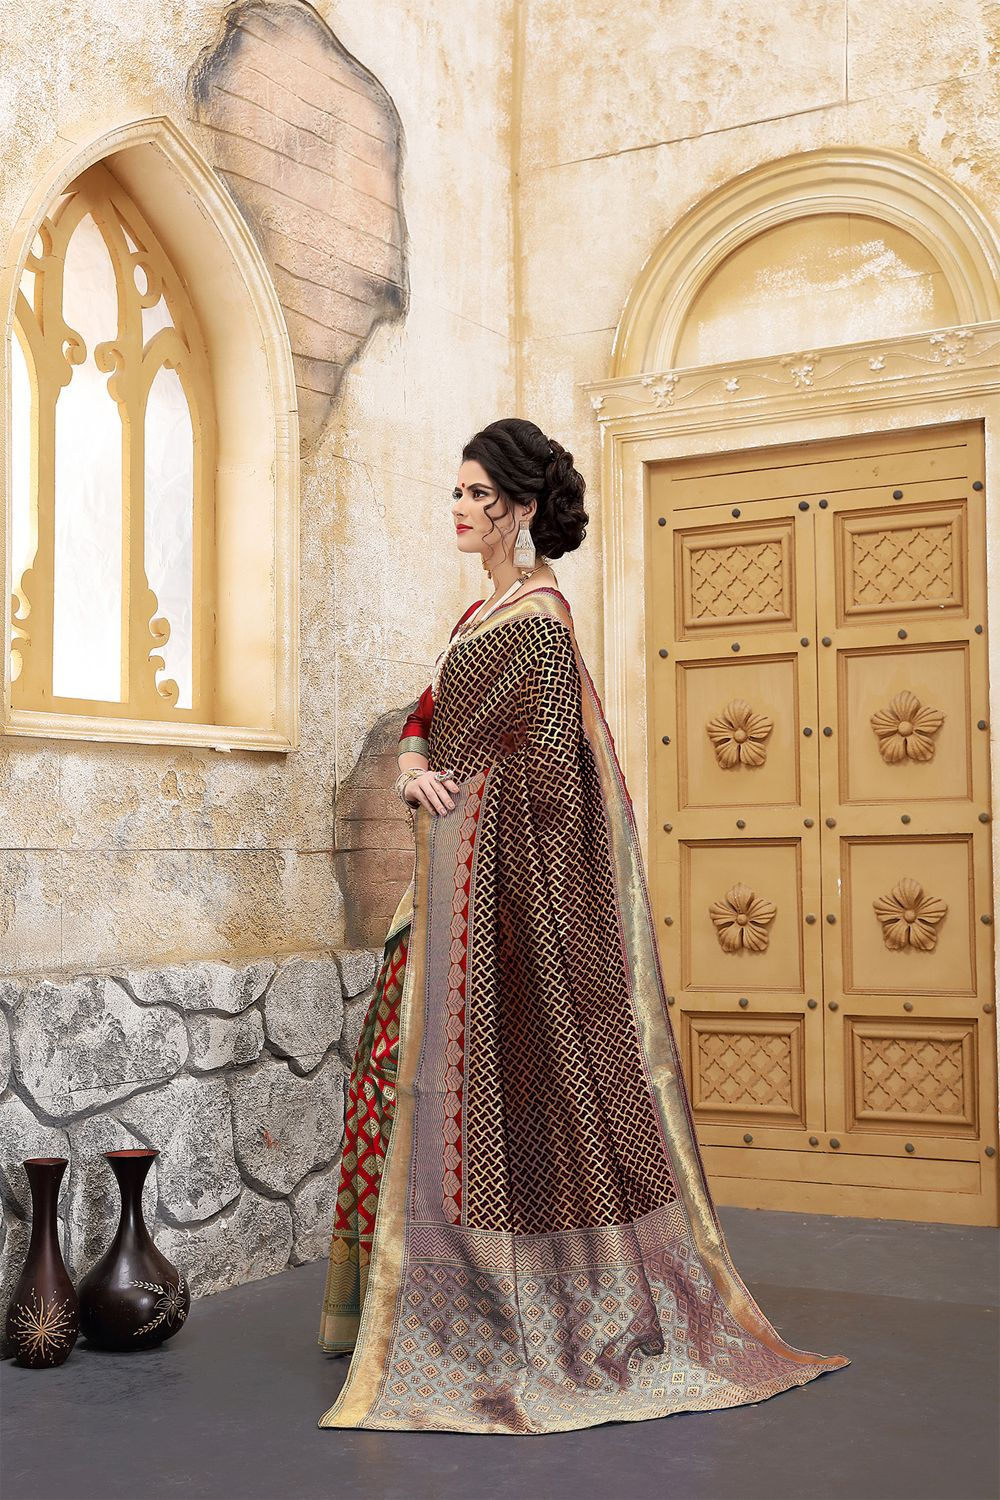 New Arrivals Check Out The Red Black Banarasi Silk Traditional Saree At Nihalfashions Discount F Indian Outfits Traditional Sarees Indian Wedding Dress